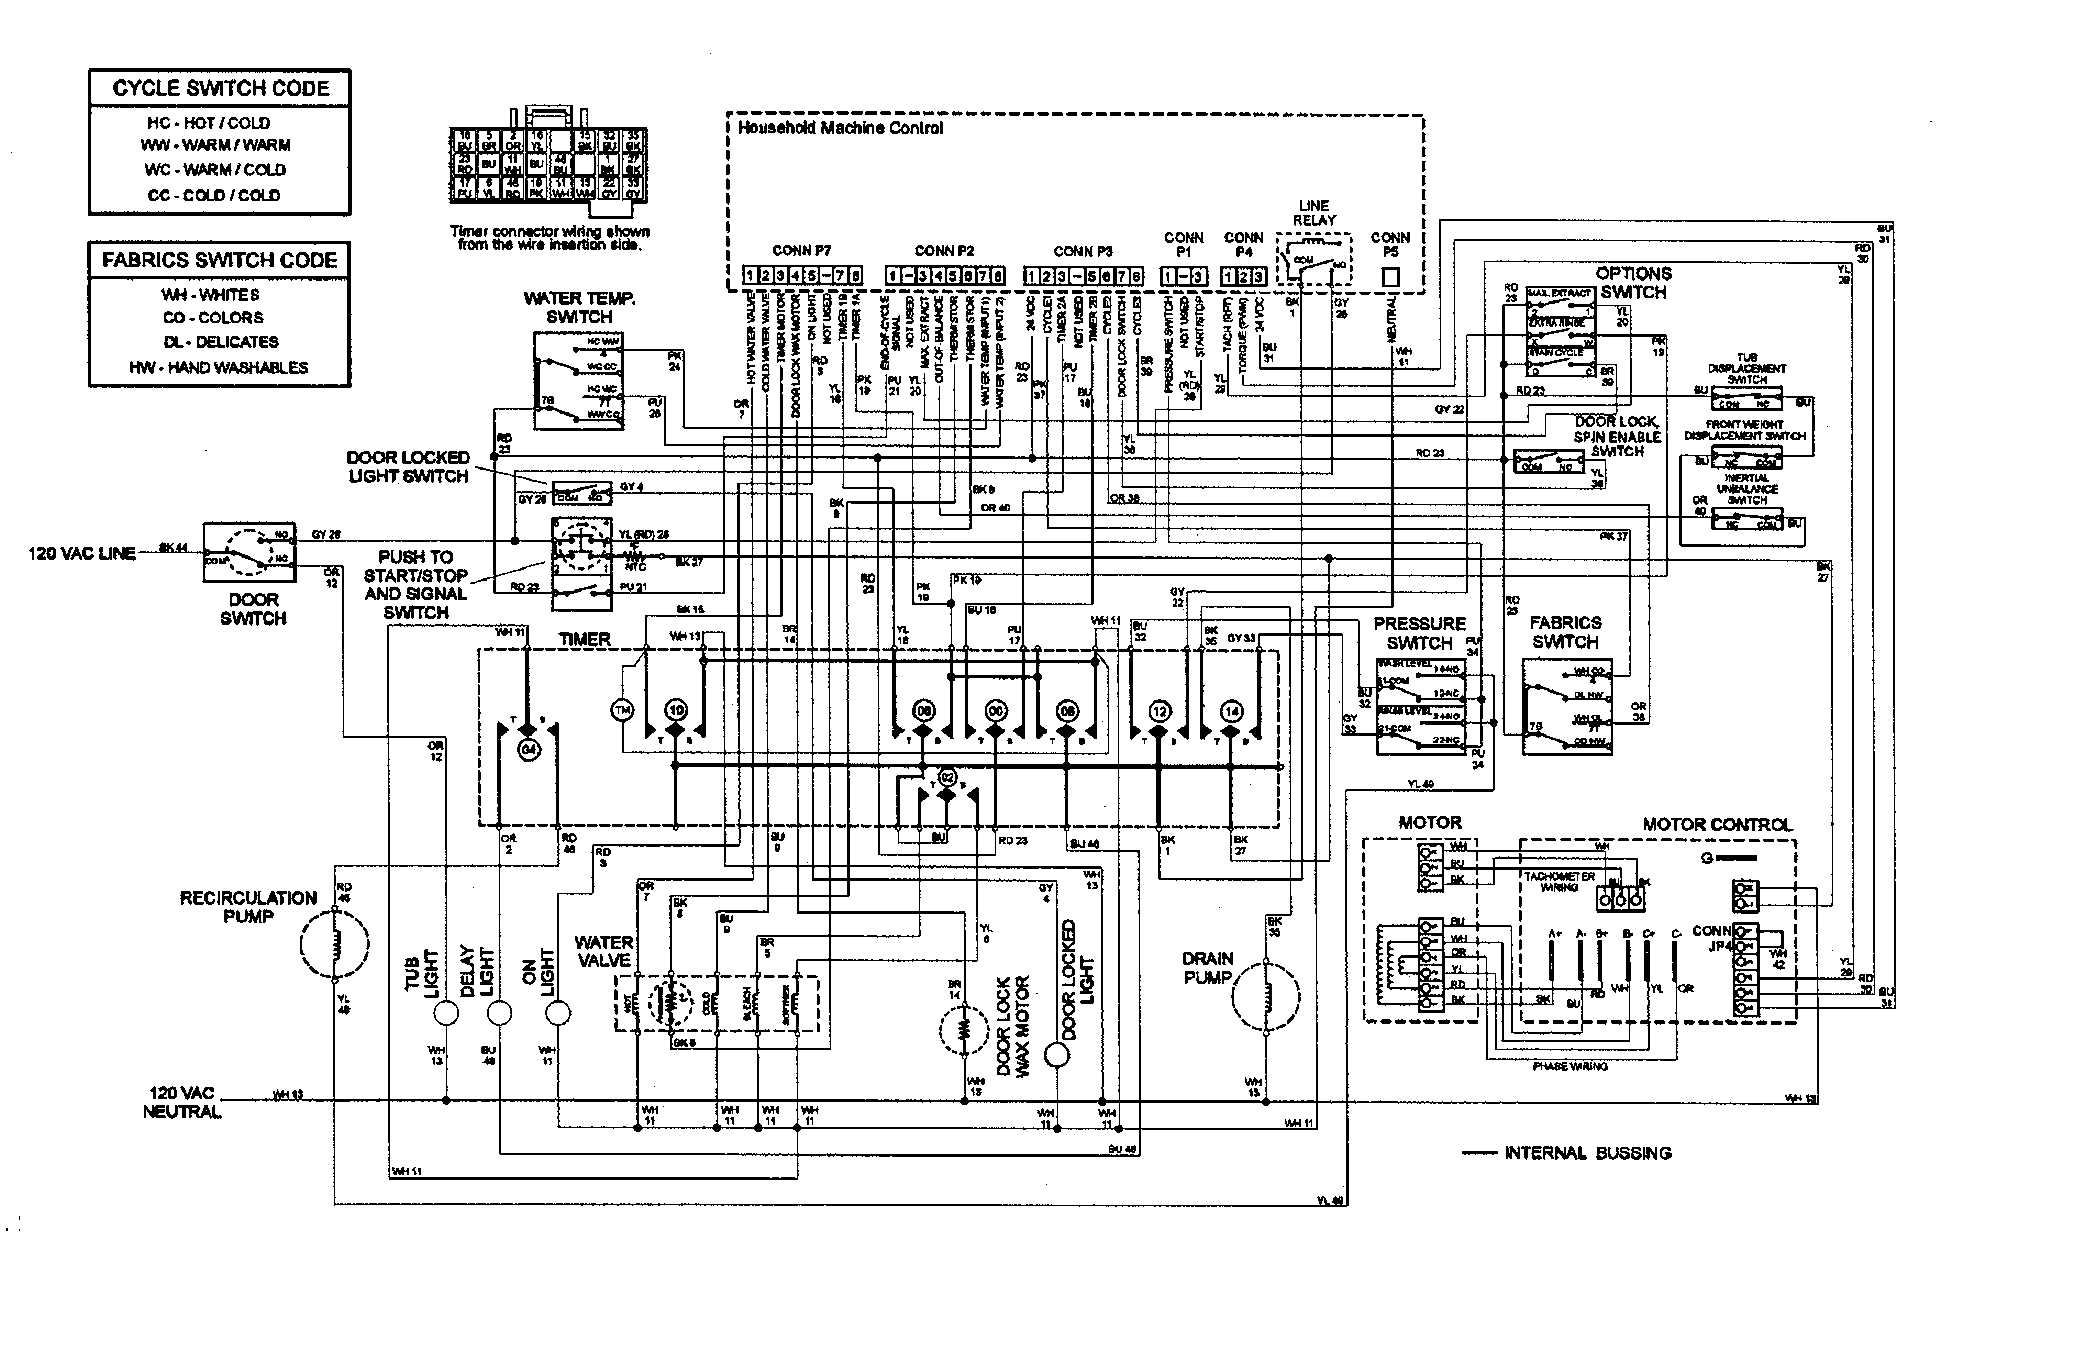 maytag washer wiring diagram Download-M 18-e